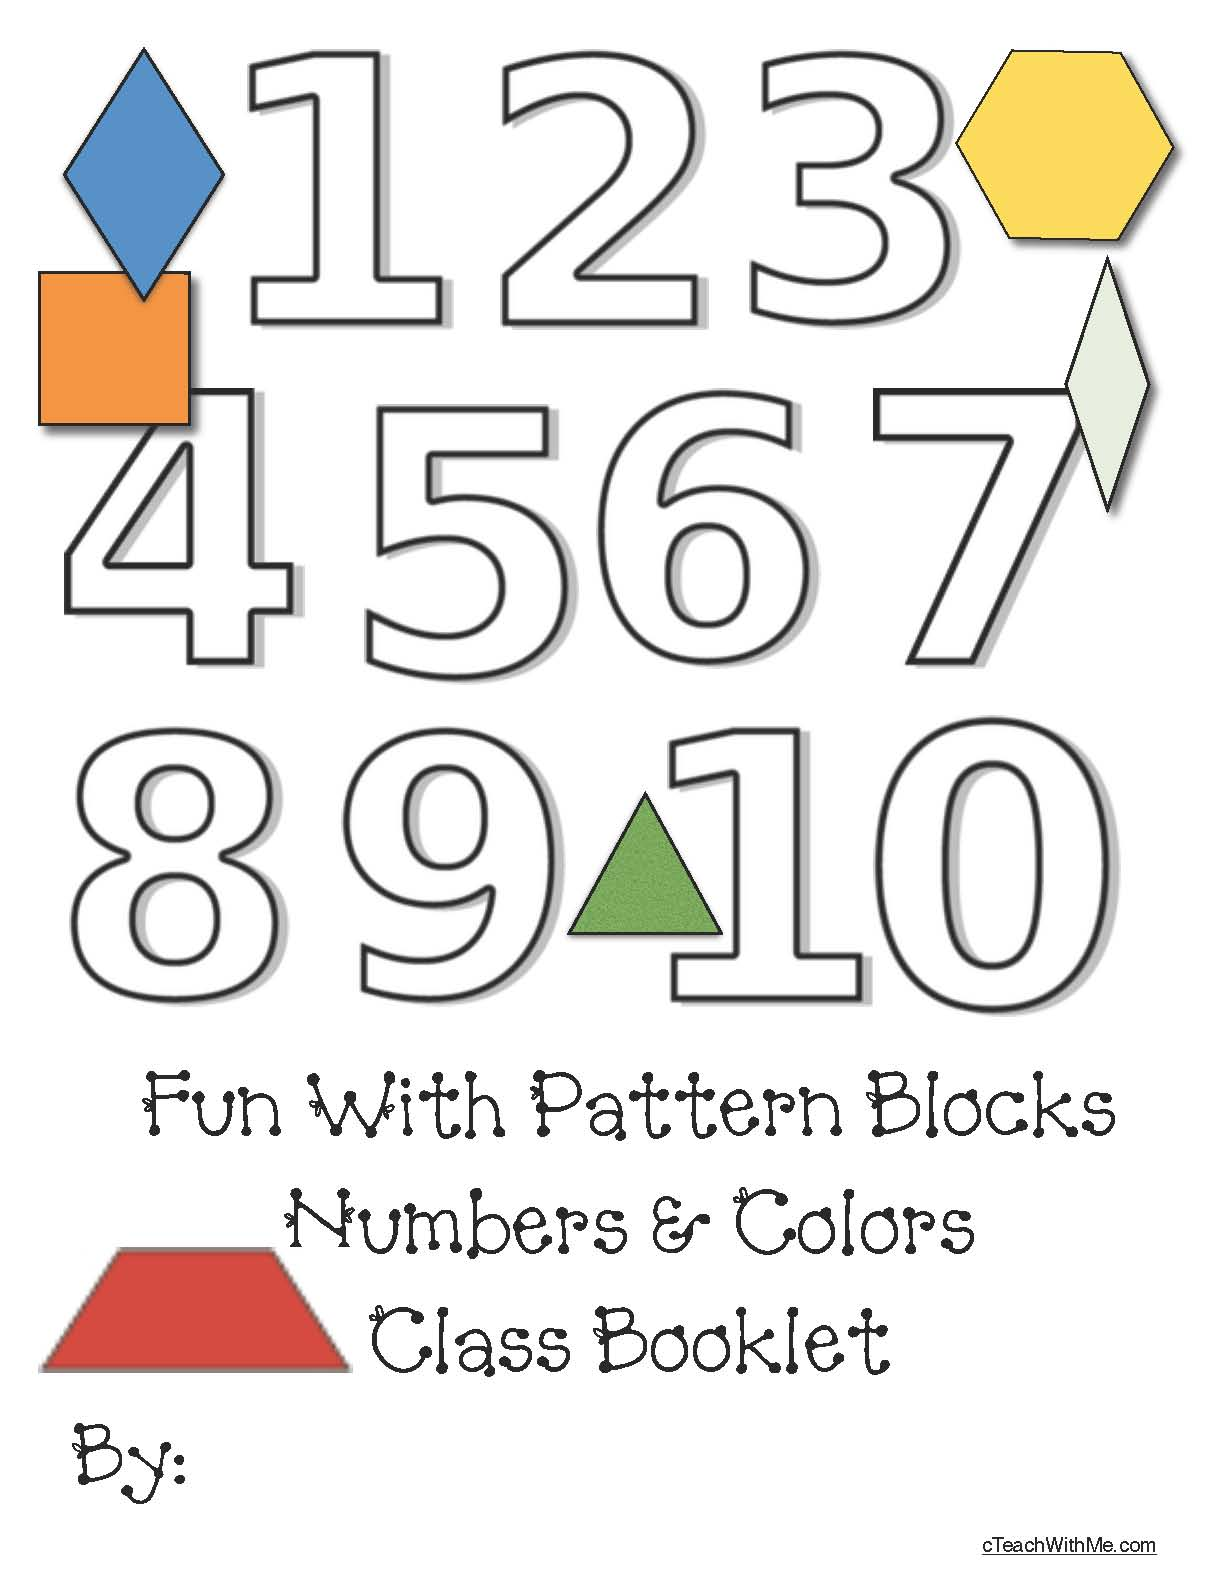 pattern blocks, pattern block stickers, pattern block activities, pattern block games, pattern block mats, 20 free pattern block mats, fractions with pattern blocks, pattern block pattern cards, pattern block alphabet cards, pattern block number cards, pattern block posters, pattern block math activities, shape activities, shape posters, traceable pattern blocks, pattern block booklets,pattern block templates